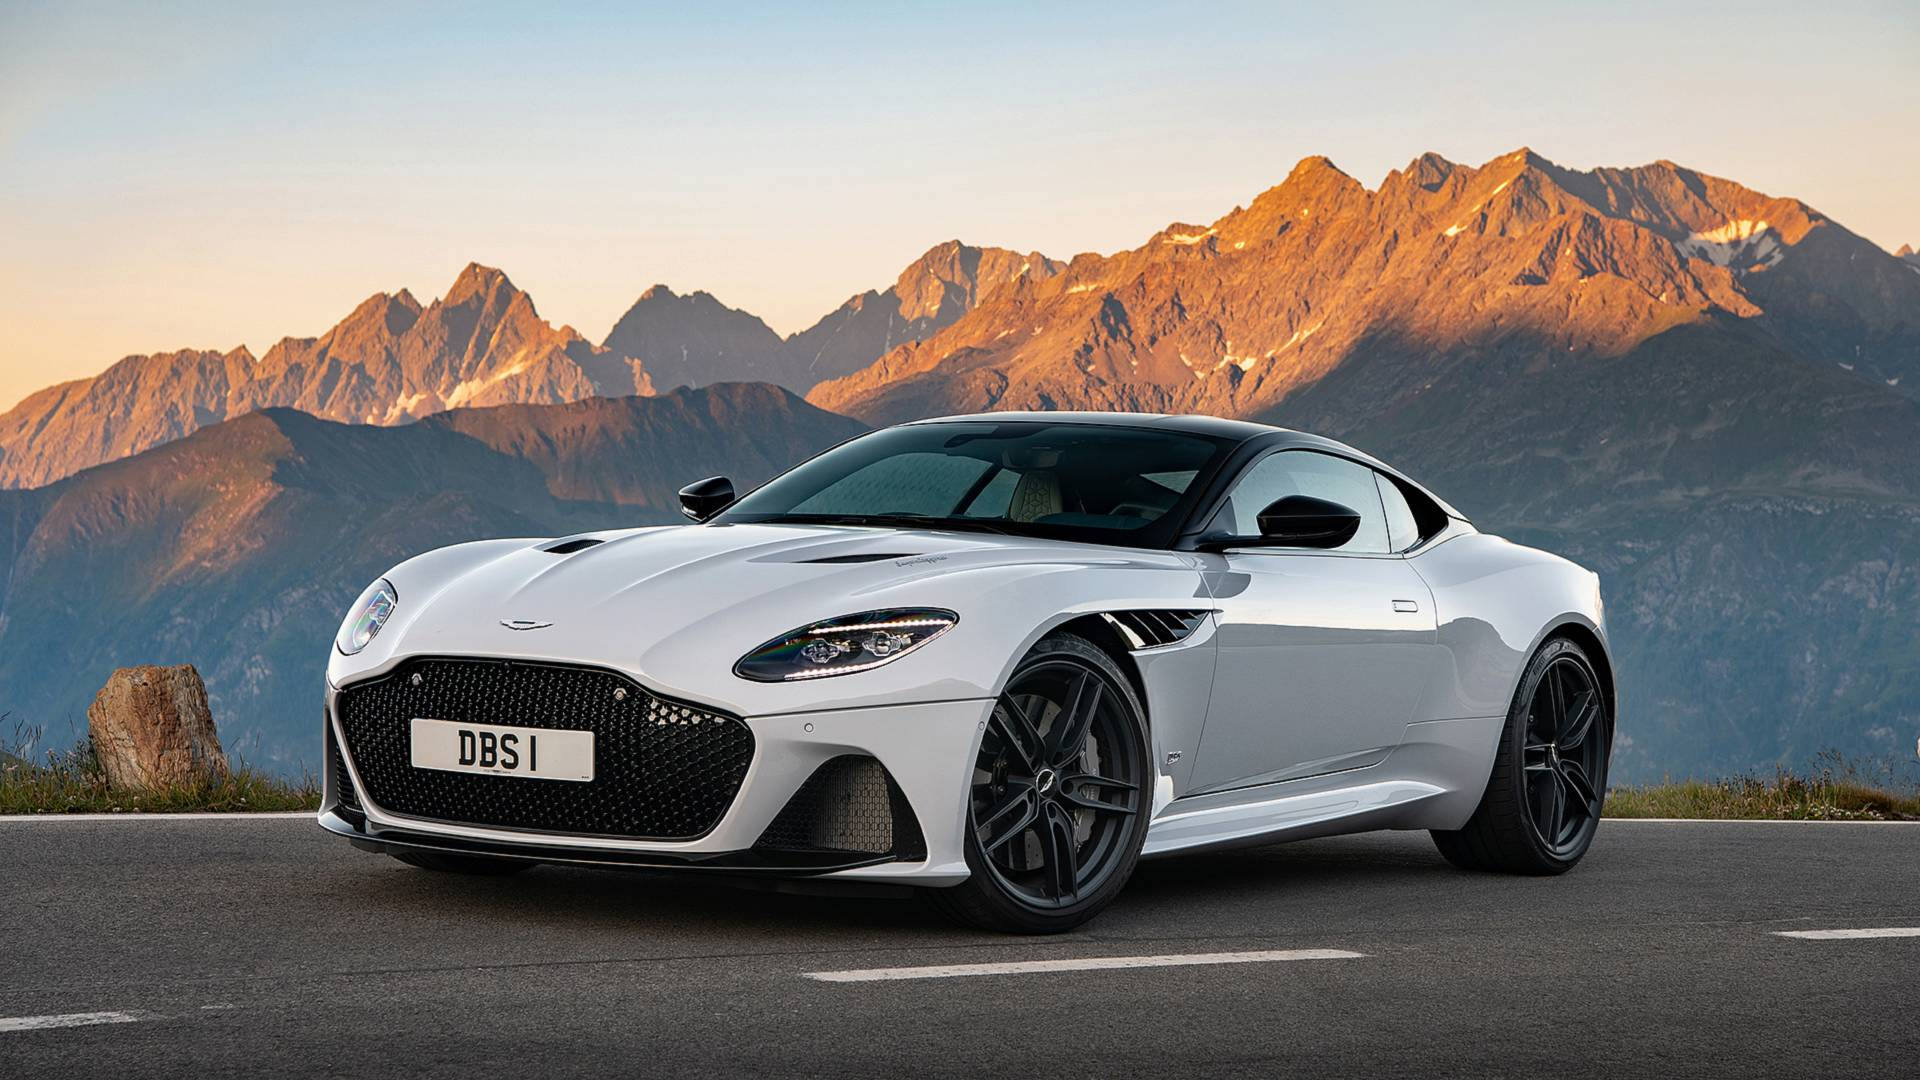 Aston Martin DBS Superleggera First Drive Whats In A Name - Aston martin dbs price